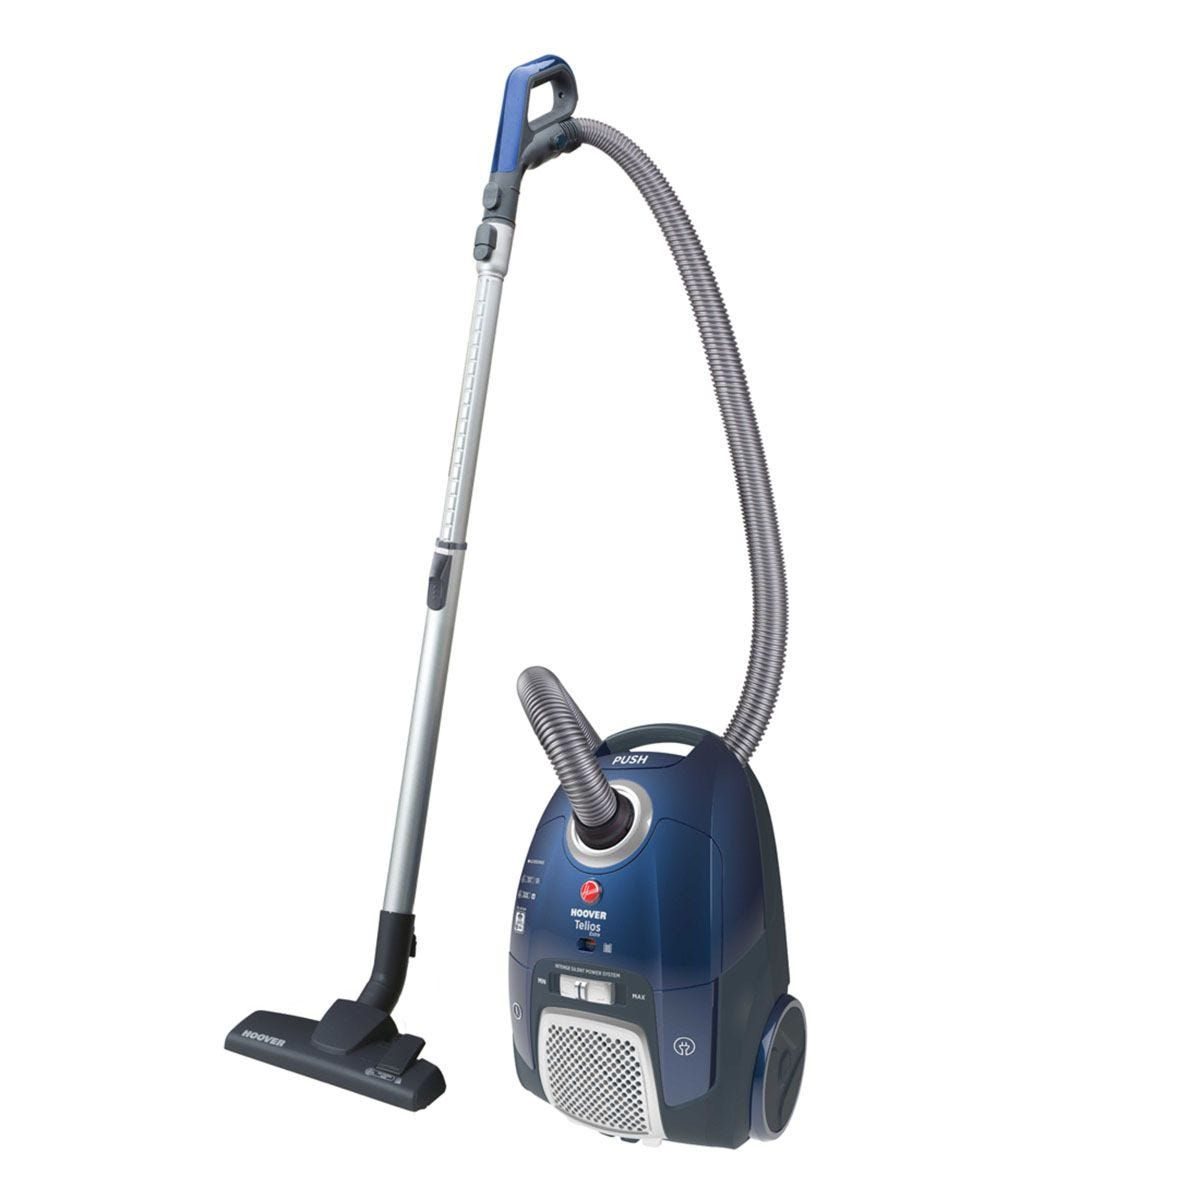 Hoover Candy Telios Extra Bagged Cylinder Vacuum Cleaner - Blue